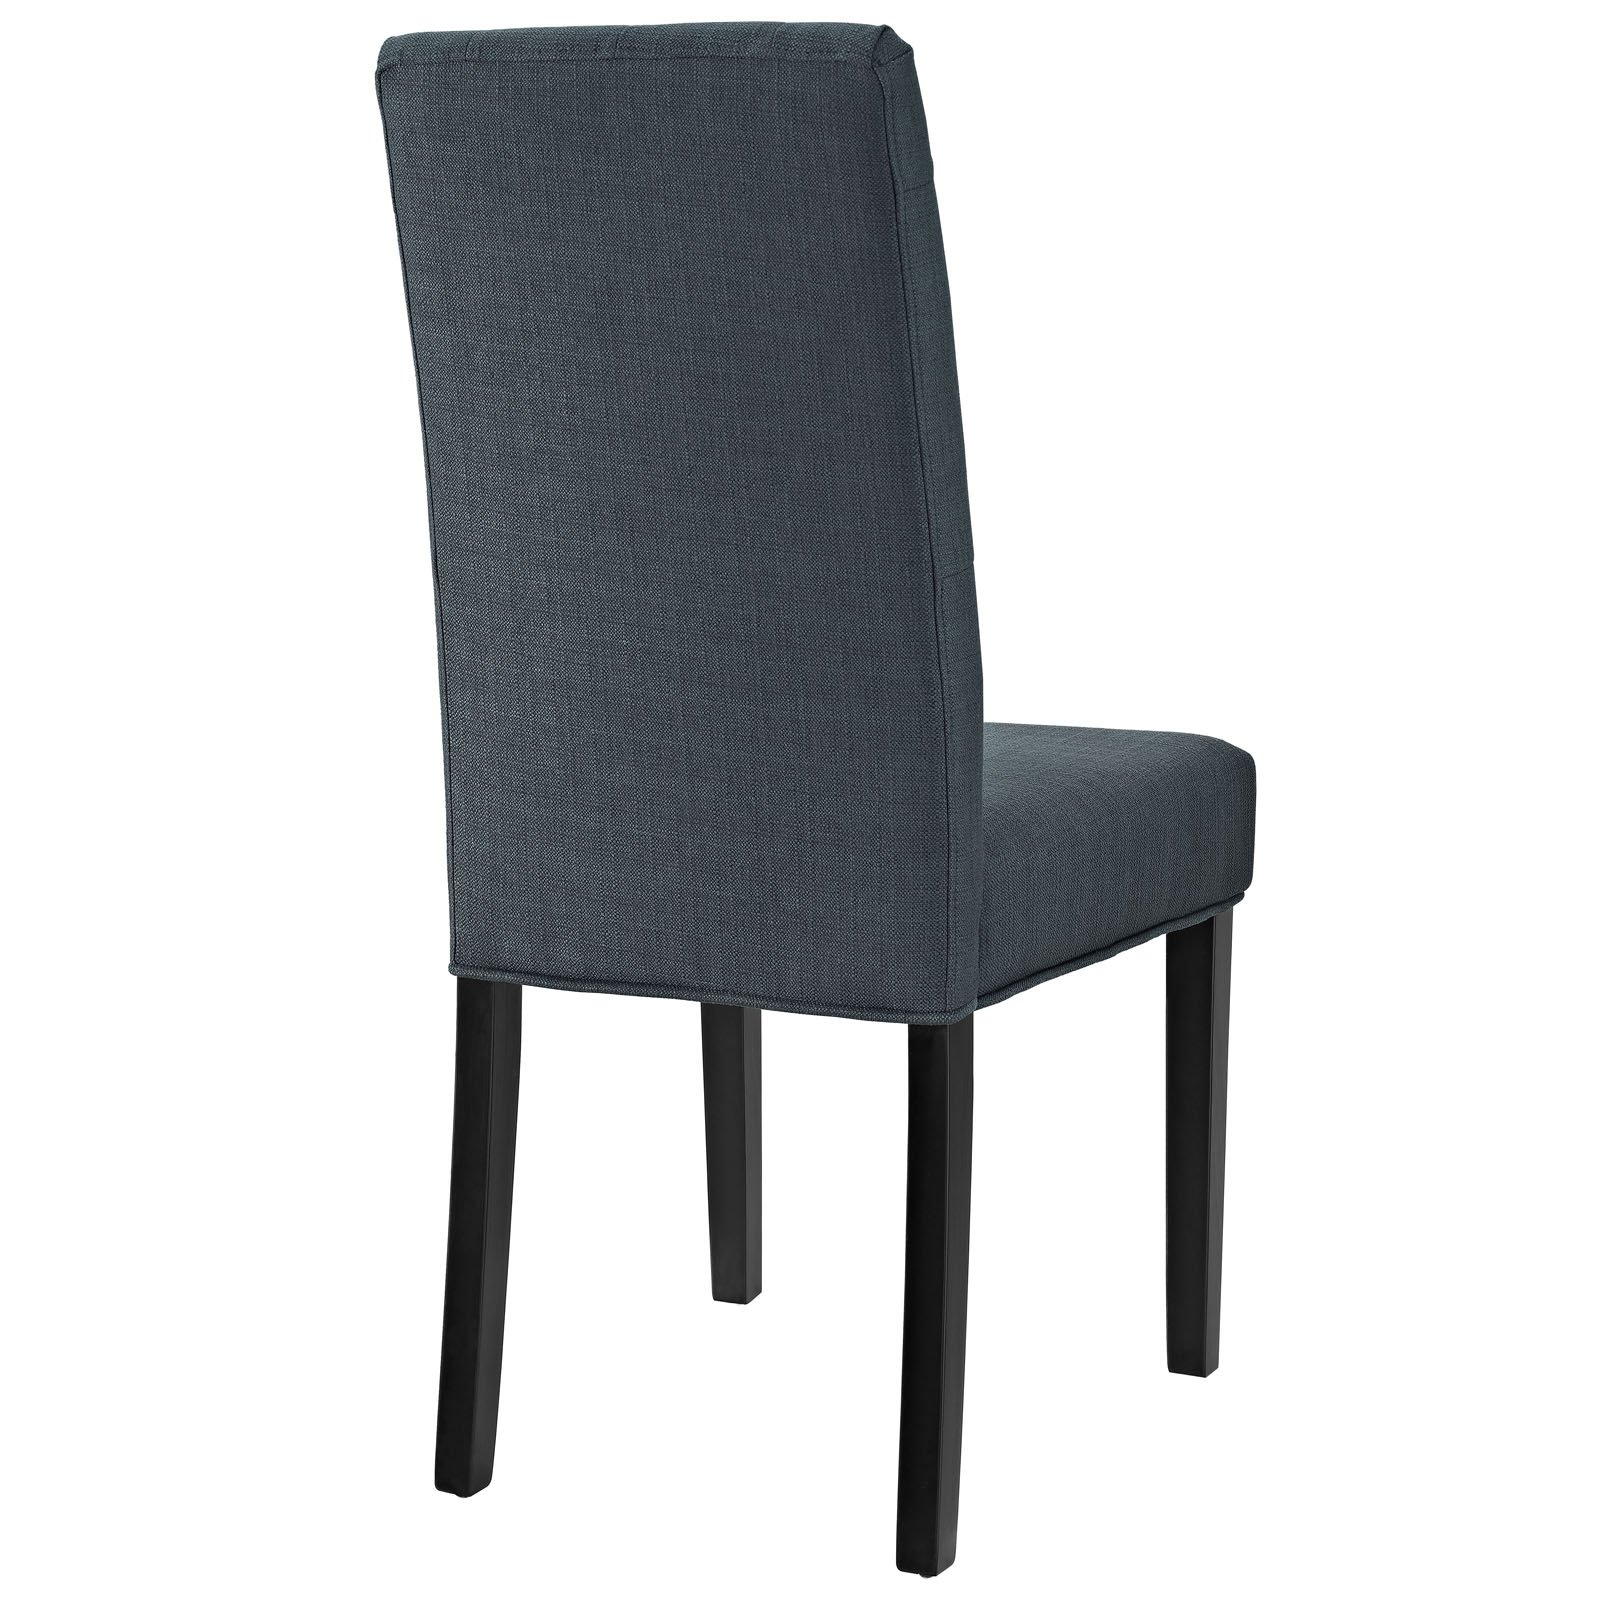 Modway Confer Dining Fabric Side Chair, Gray by Modway (Image #3)